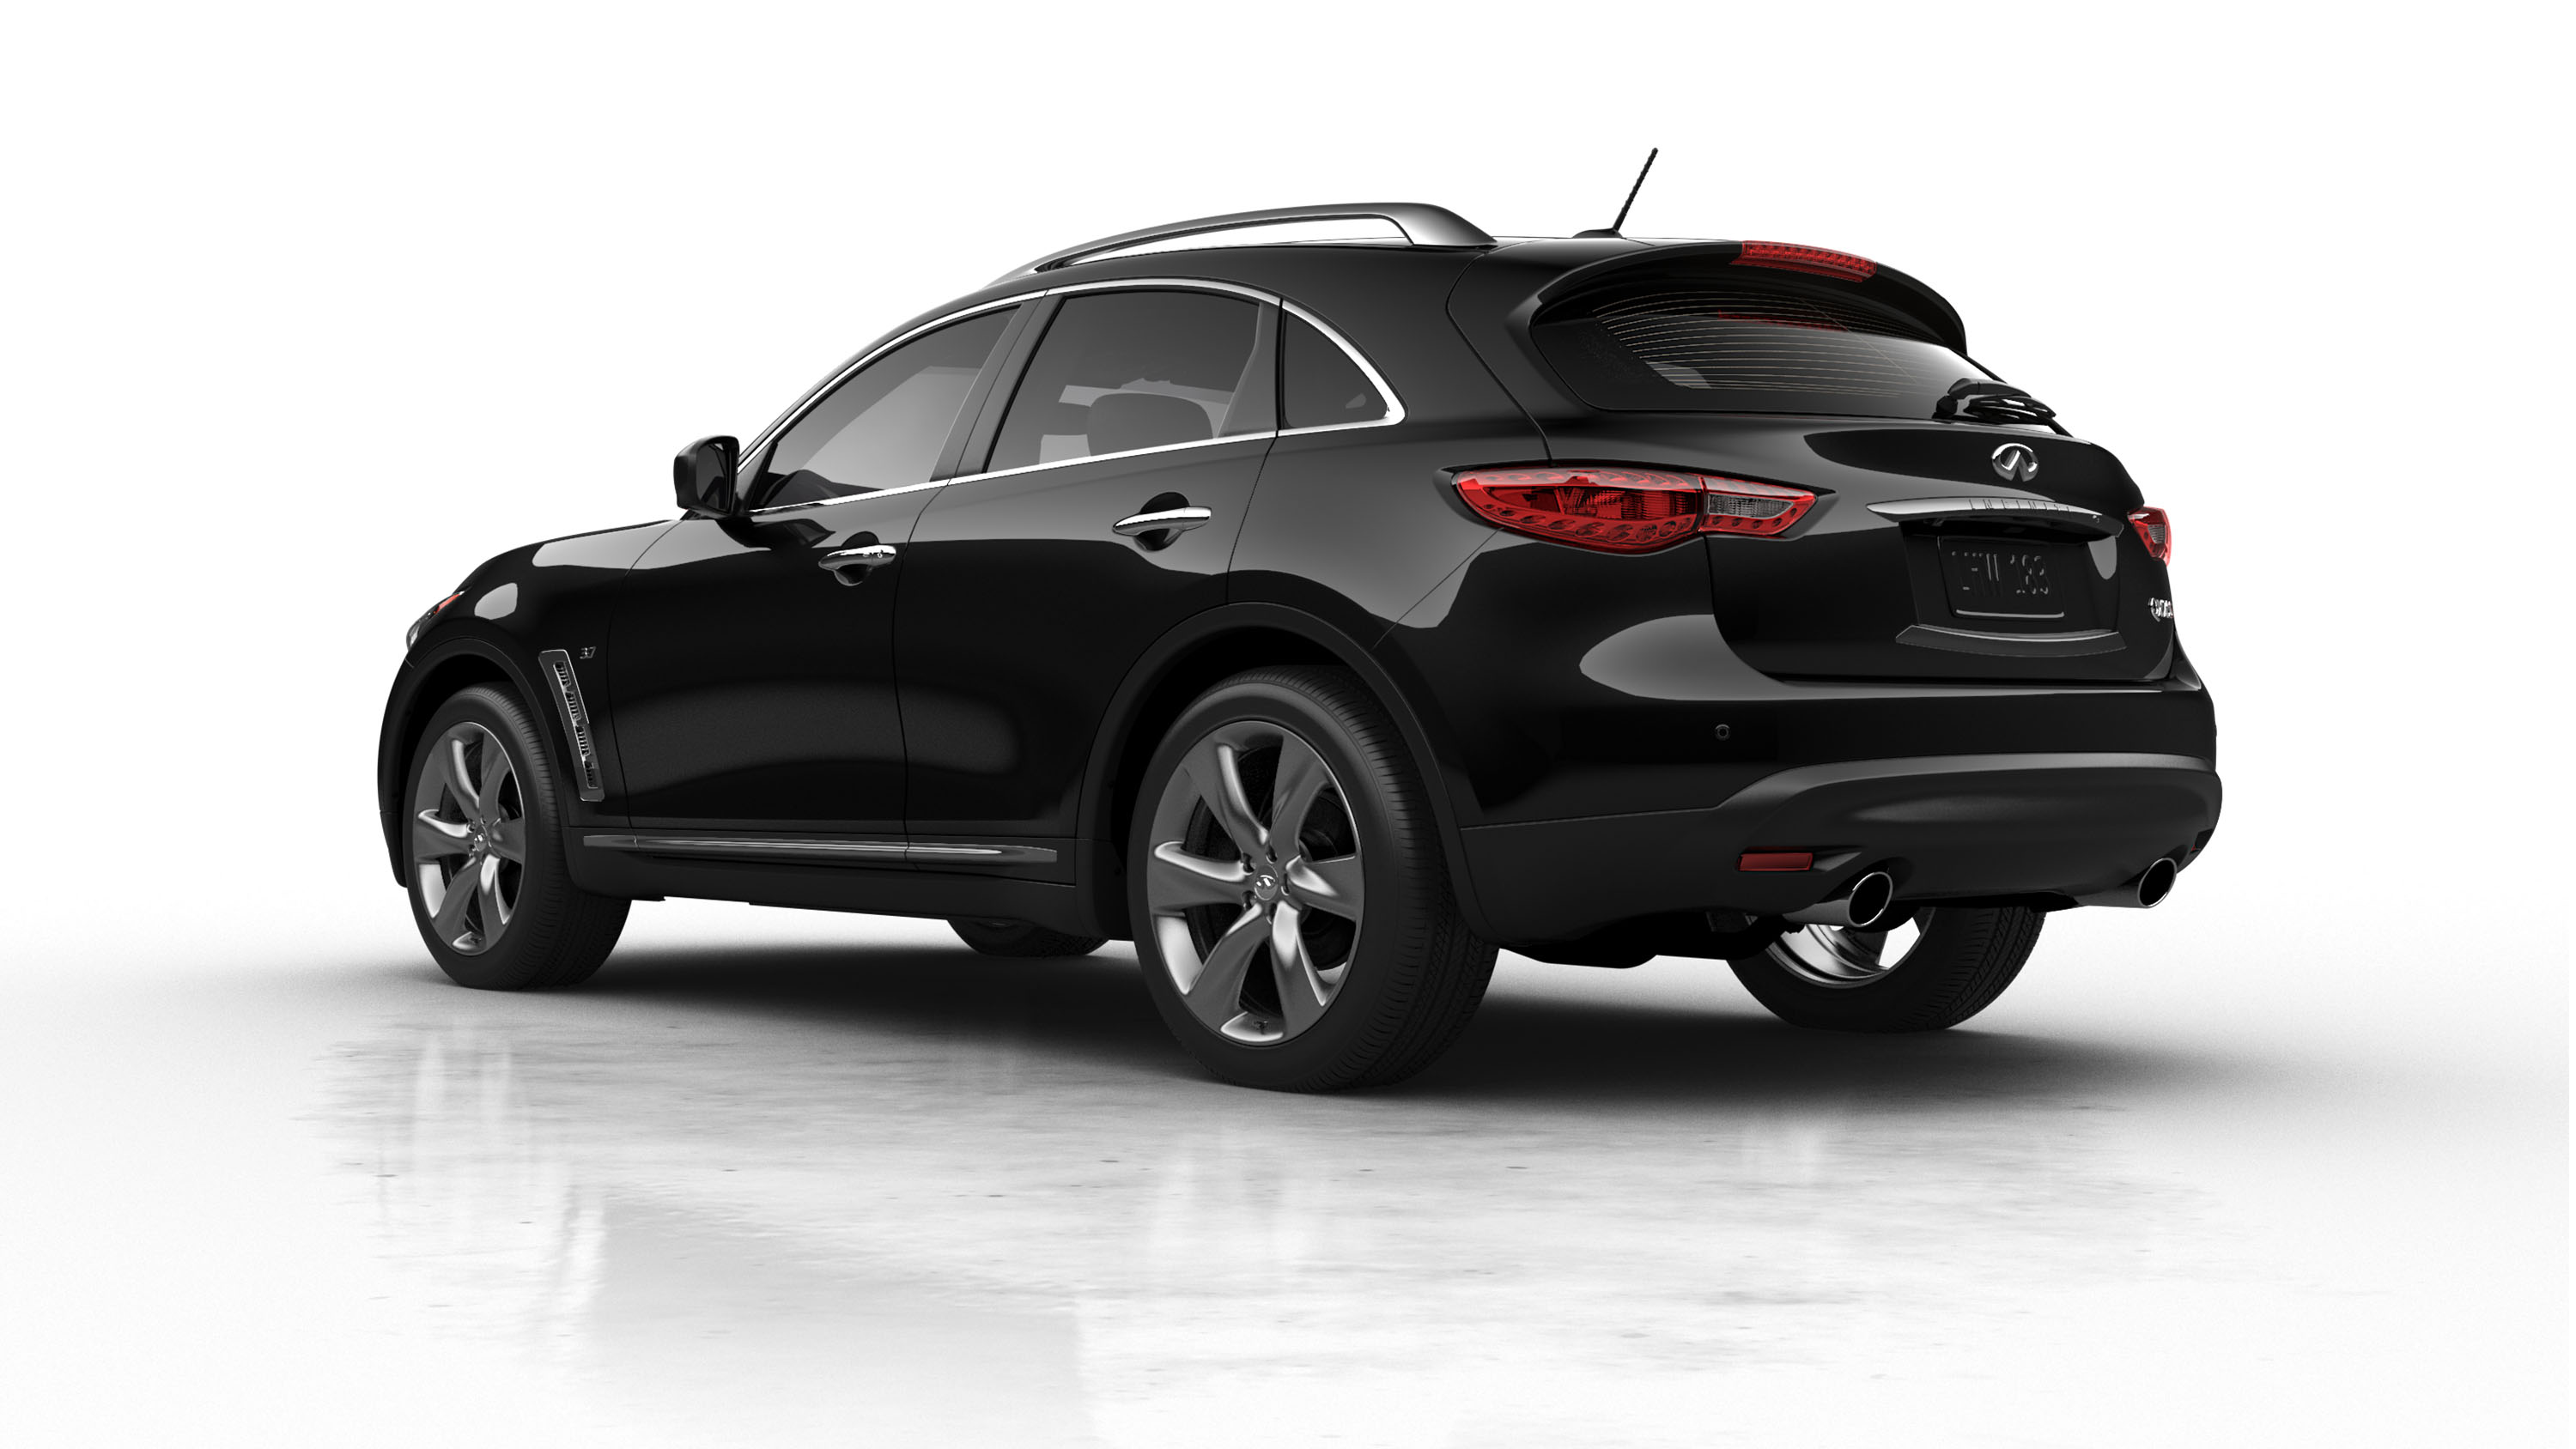 2015 infiniti qx70 information and photos zombiedrive. Black Bedroom Furniture Sets. Home Design Ideas